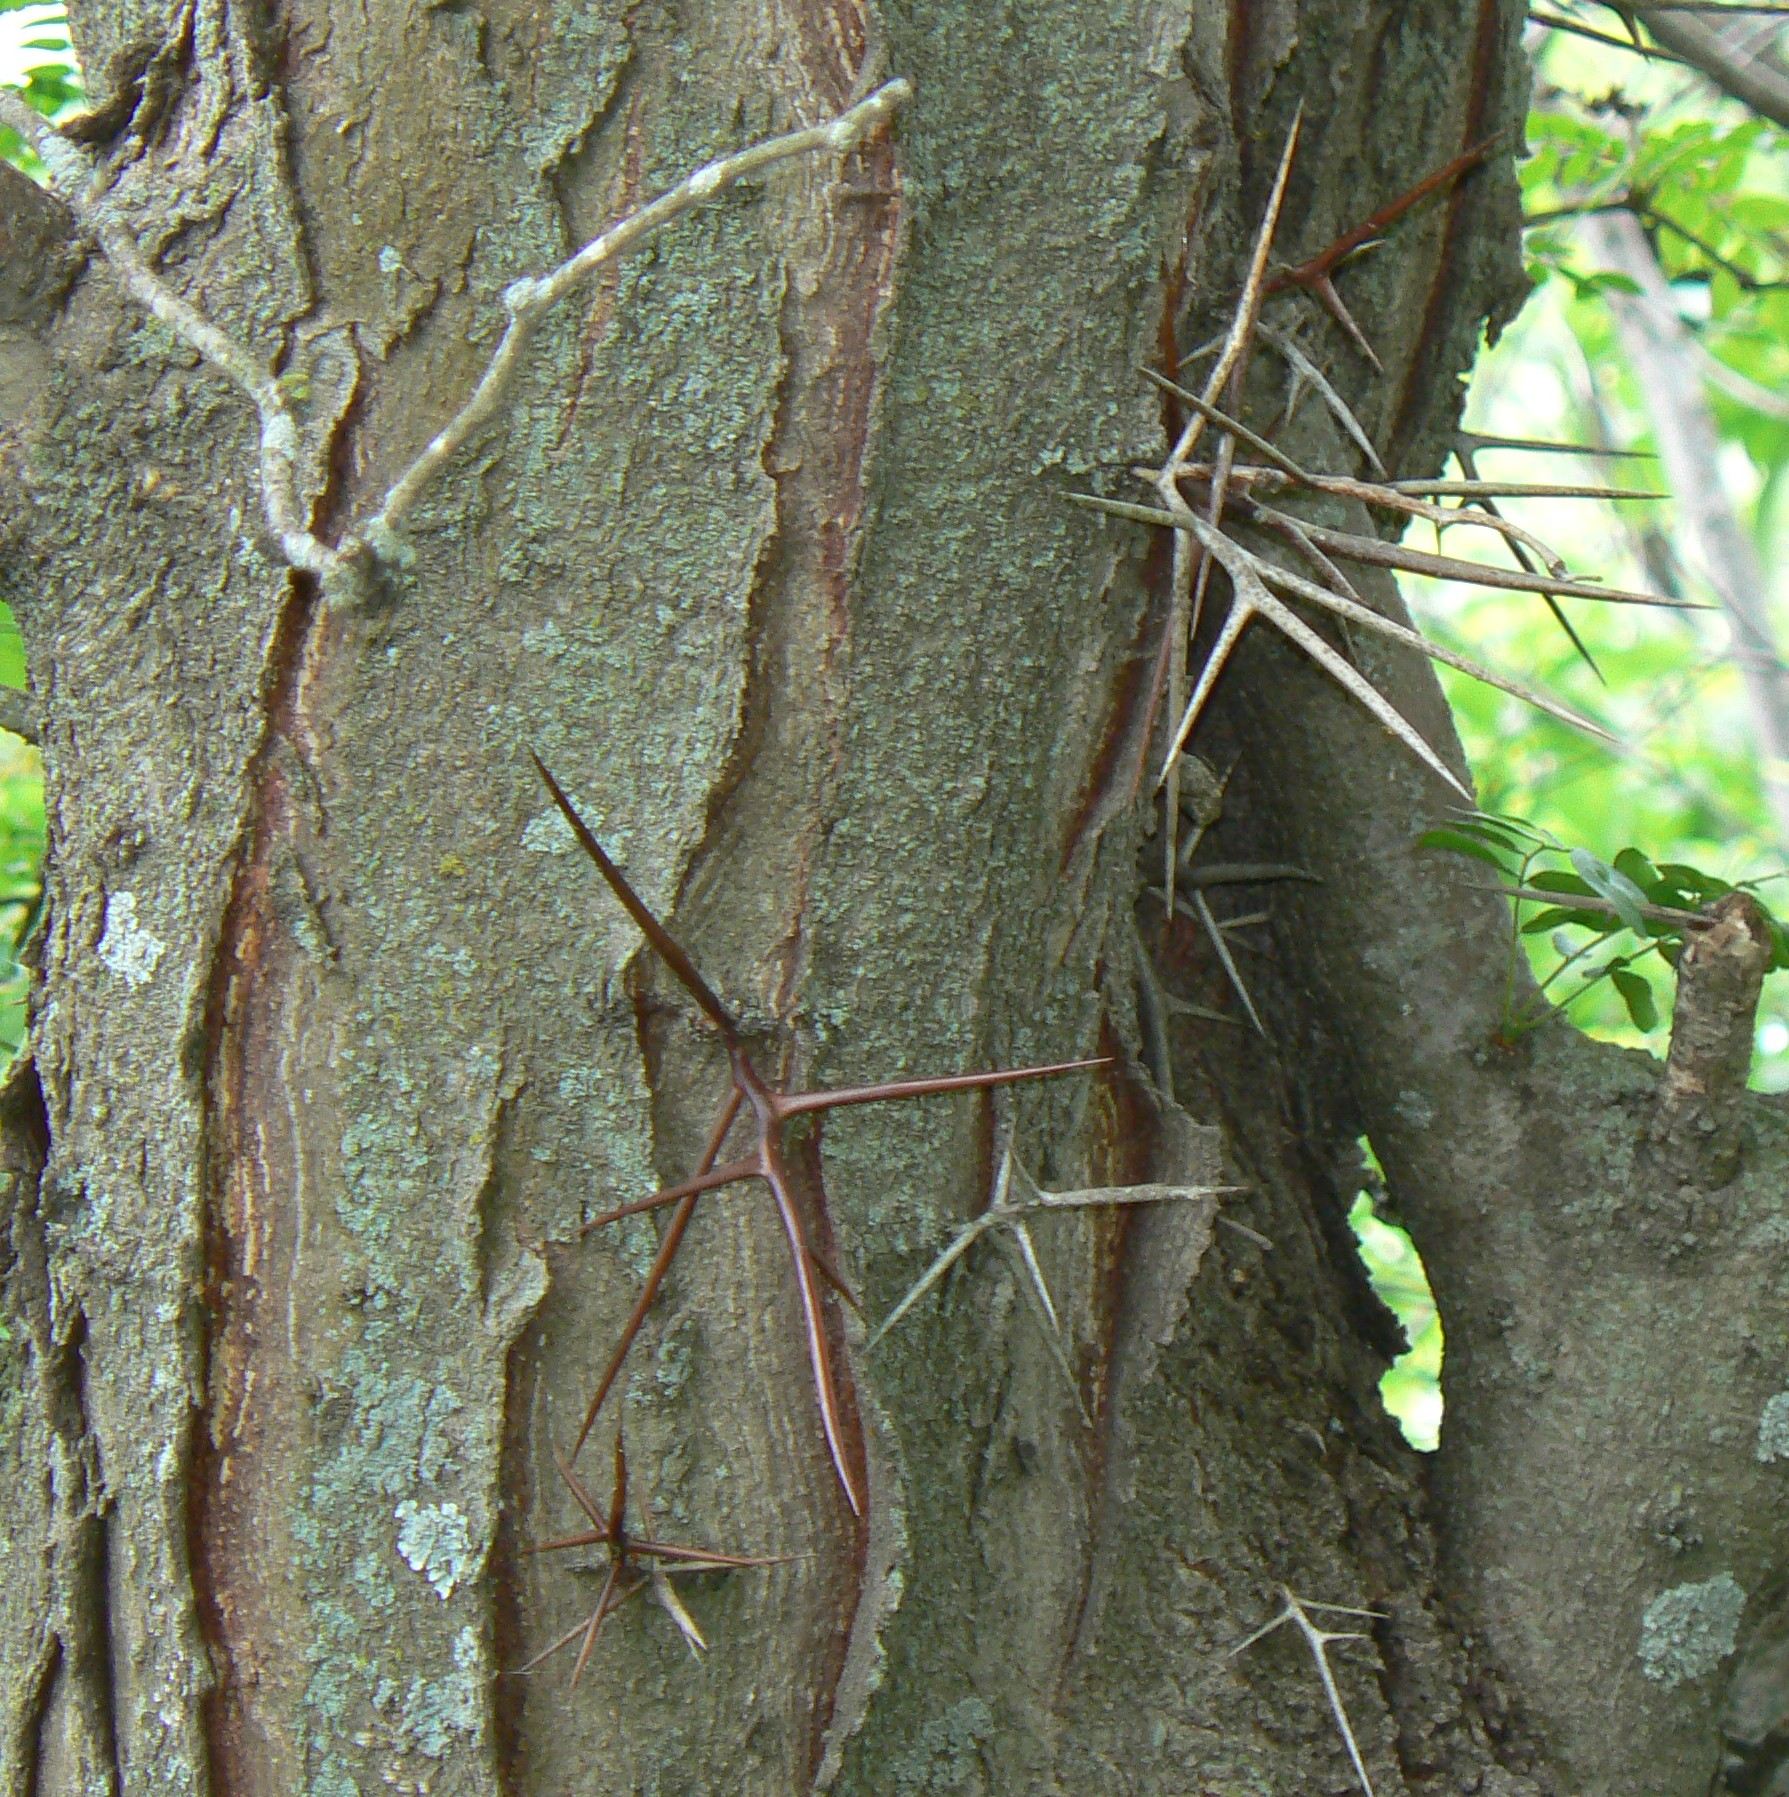 File:Honey locust thorns.jpg - Wikimedia Commons